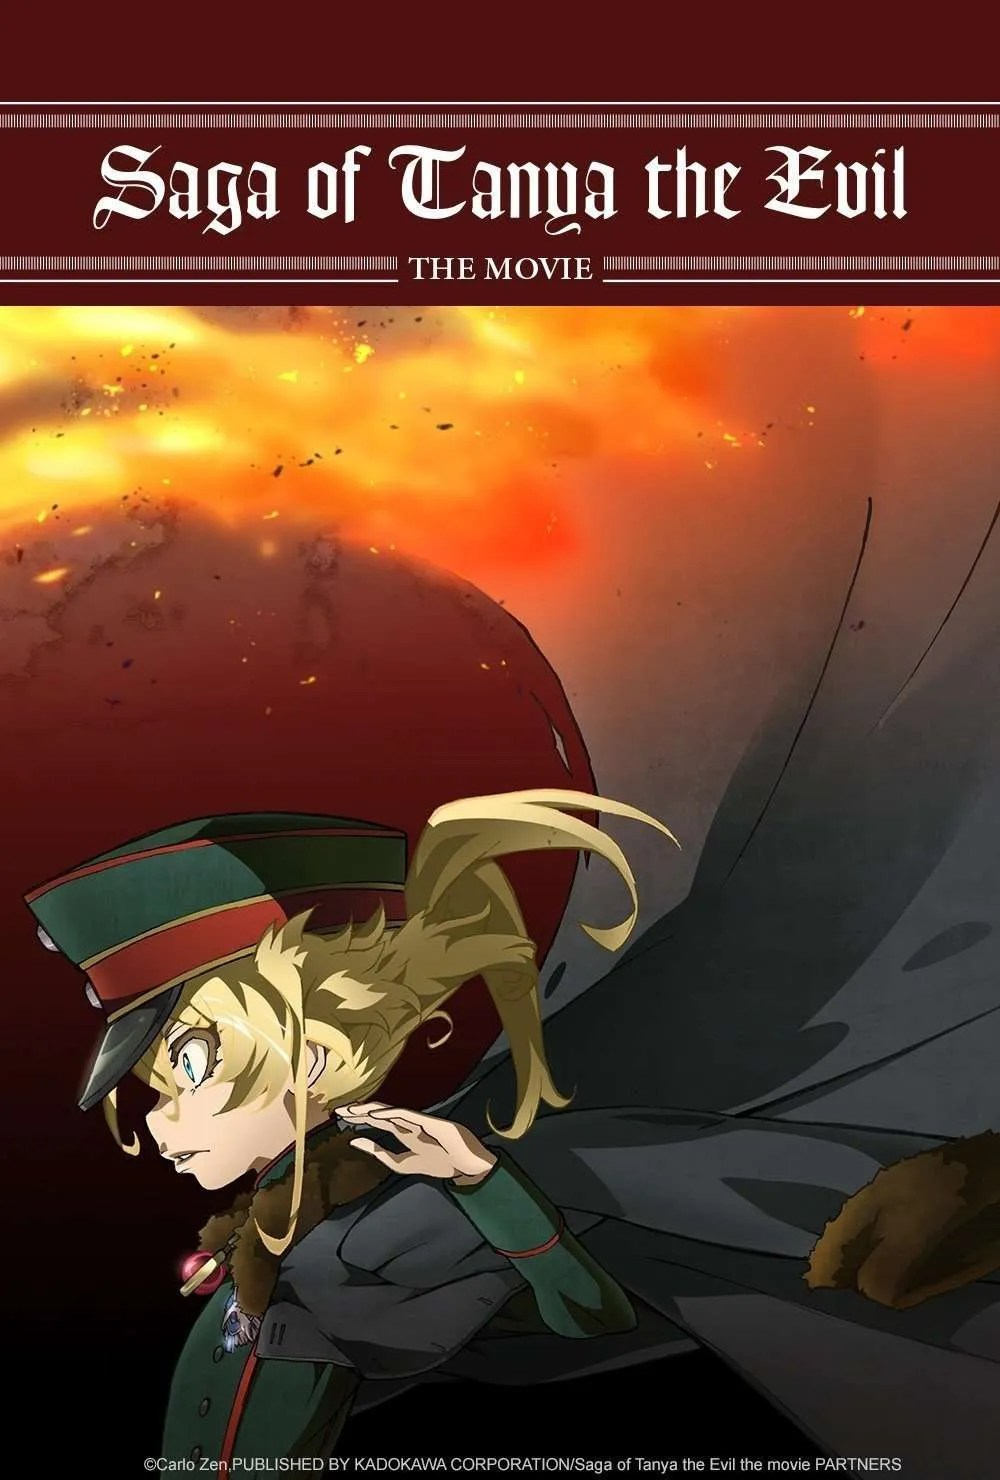 Saga Of Tanya The Evil Film Vostfr : tanya, vostfr, Tanya, Movie, Arrive, Crunchyroll